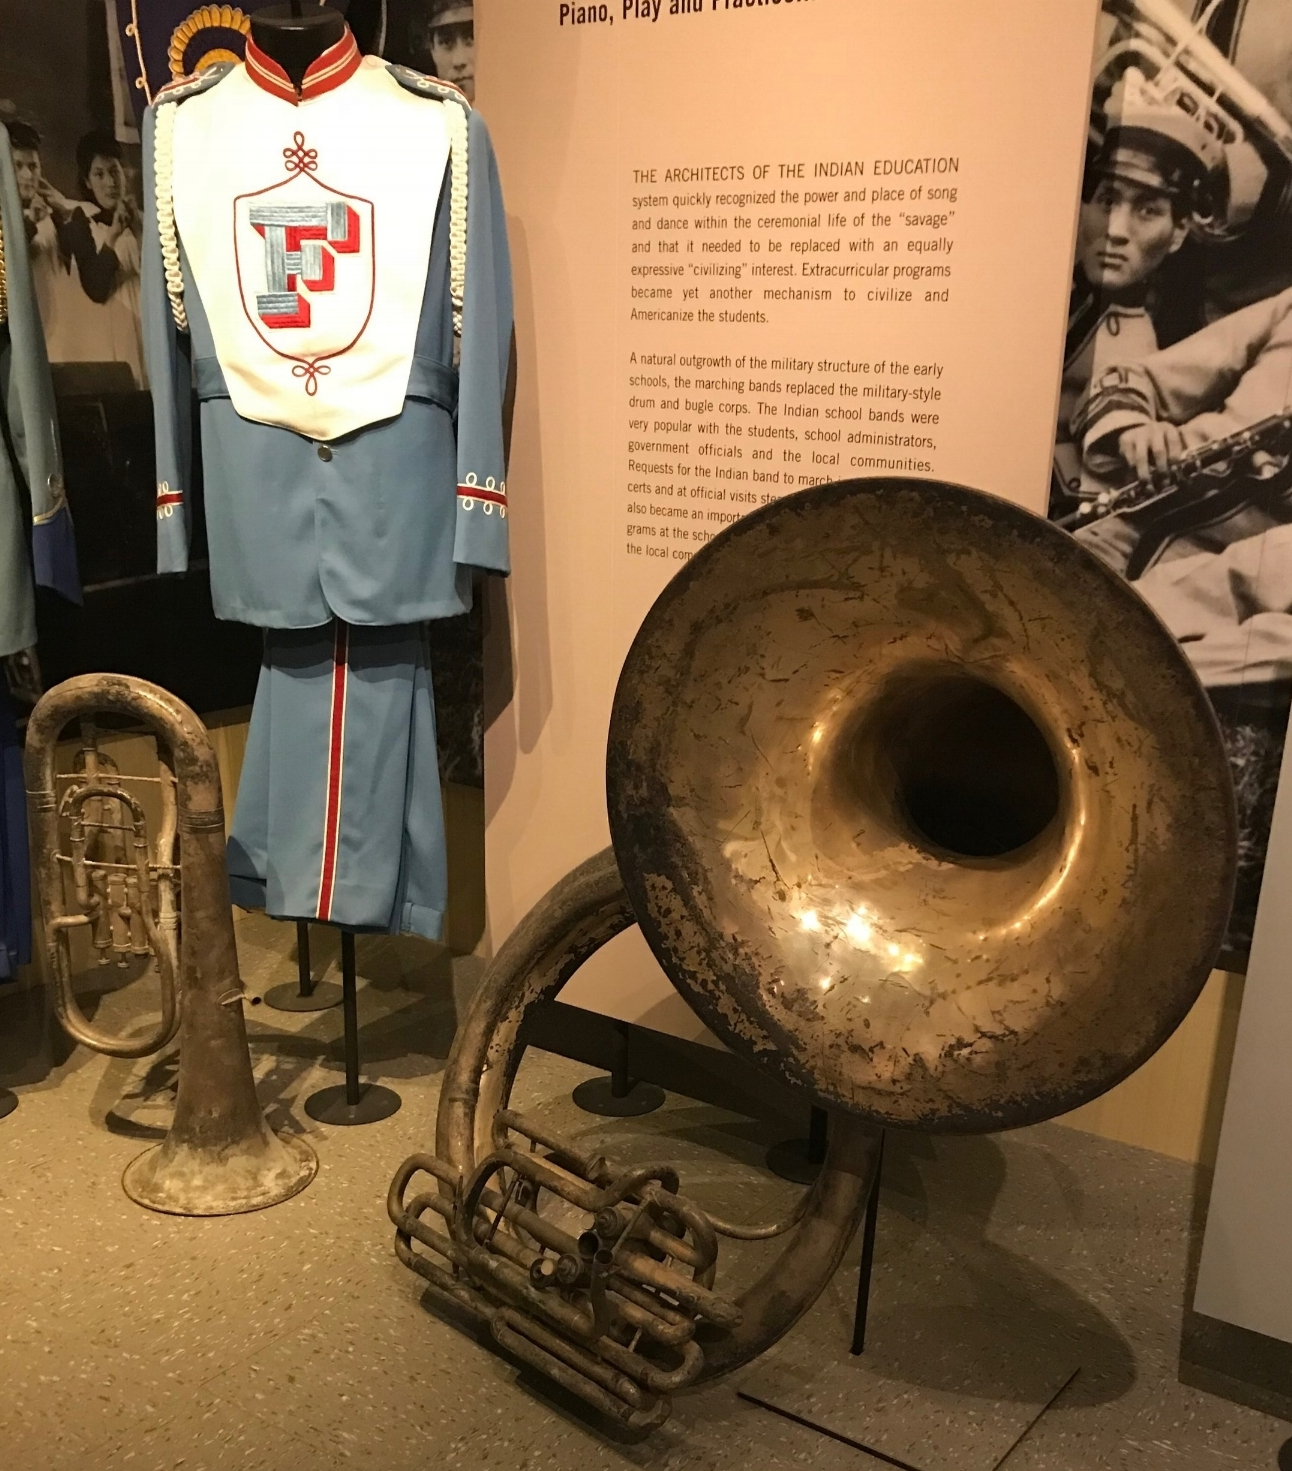 Exhibition Review: - Music at Phoenix's Heard Museum